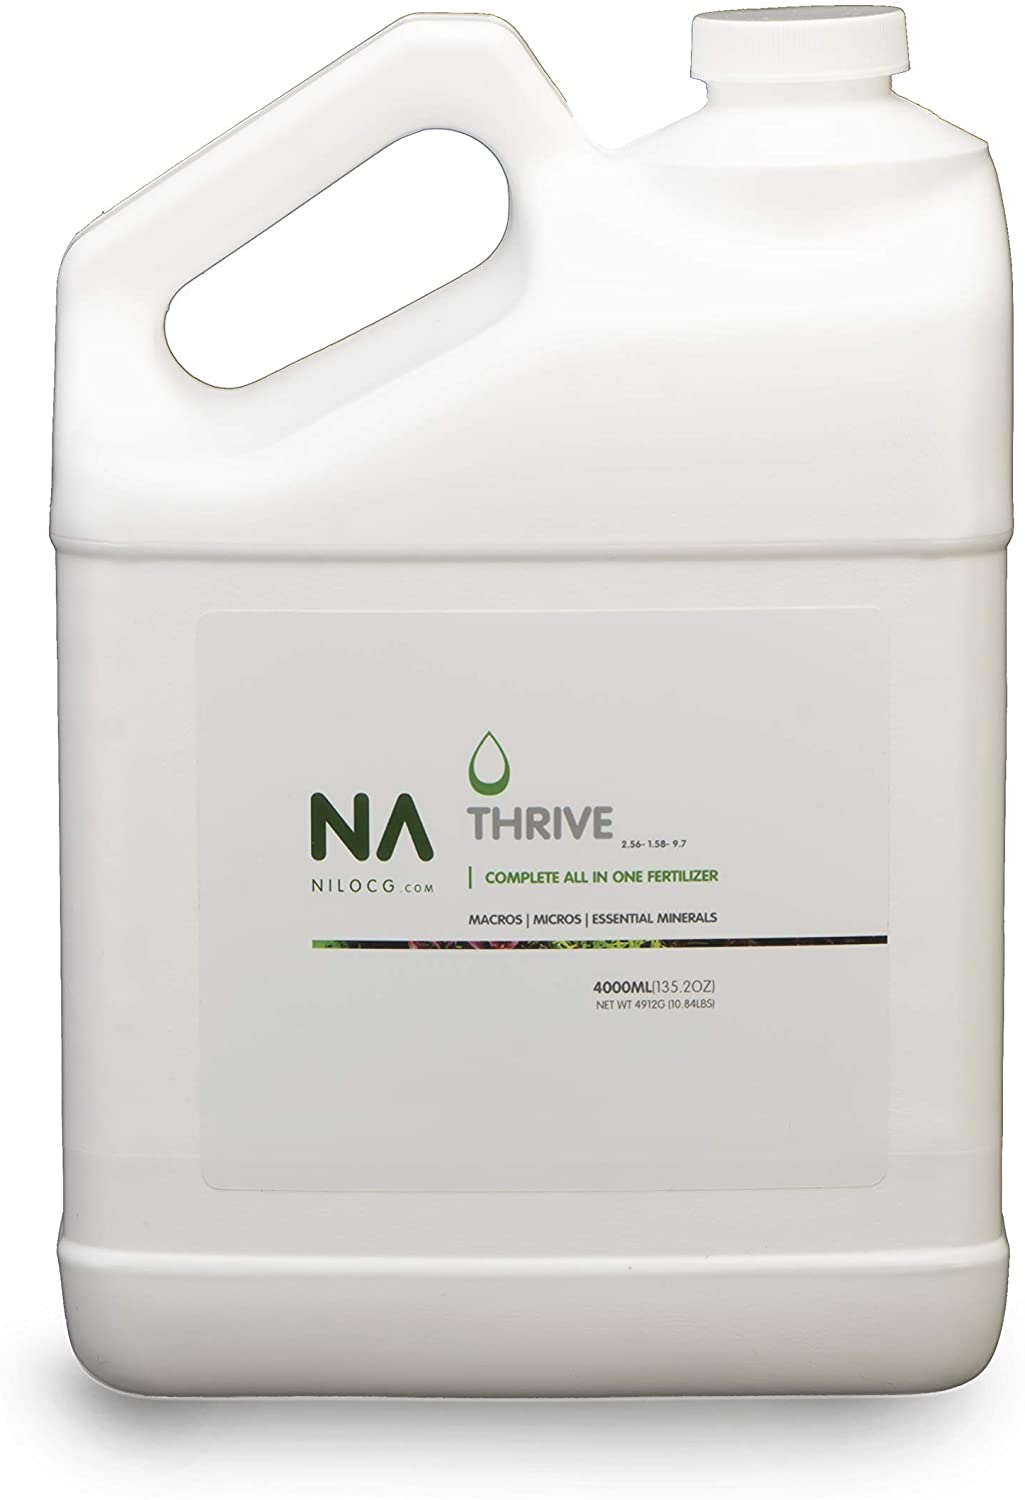 Thrive Planted Aquarium Fertilizer 4000ml Refill Jug-All in One Planted Tank Liquid Fertilizers - Micro & Macro Nutrient Rich Food for Aquatic Plants - Highly Concentrated for 20000 Gallons of Water